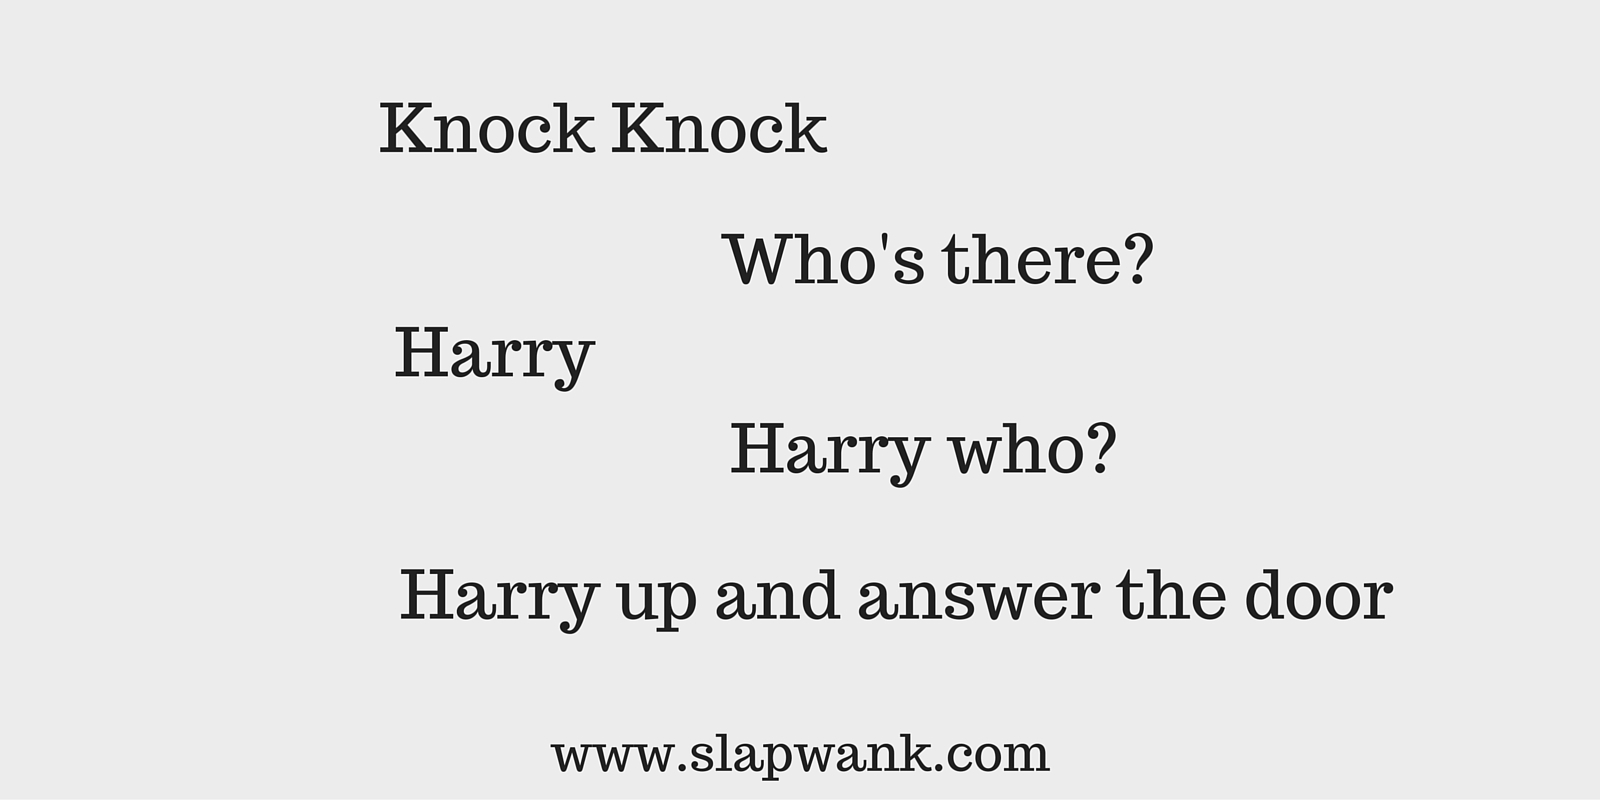 A collection of the world's worst Knock knock jokes. What do you think to this one?